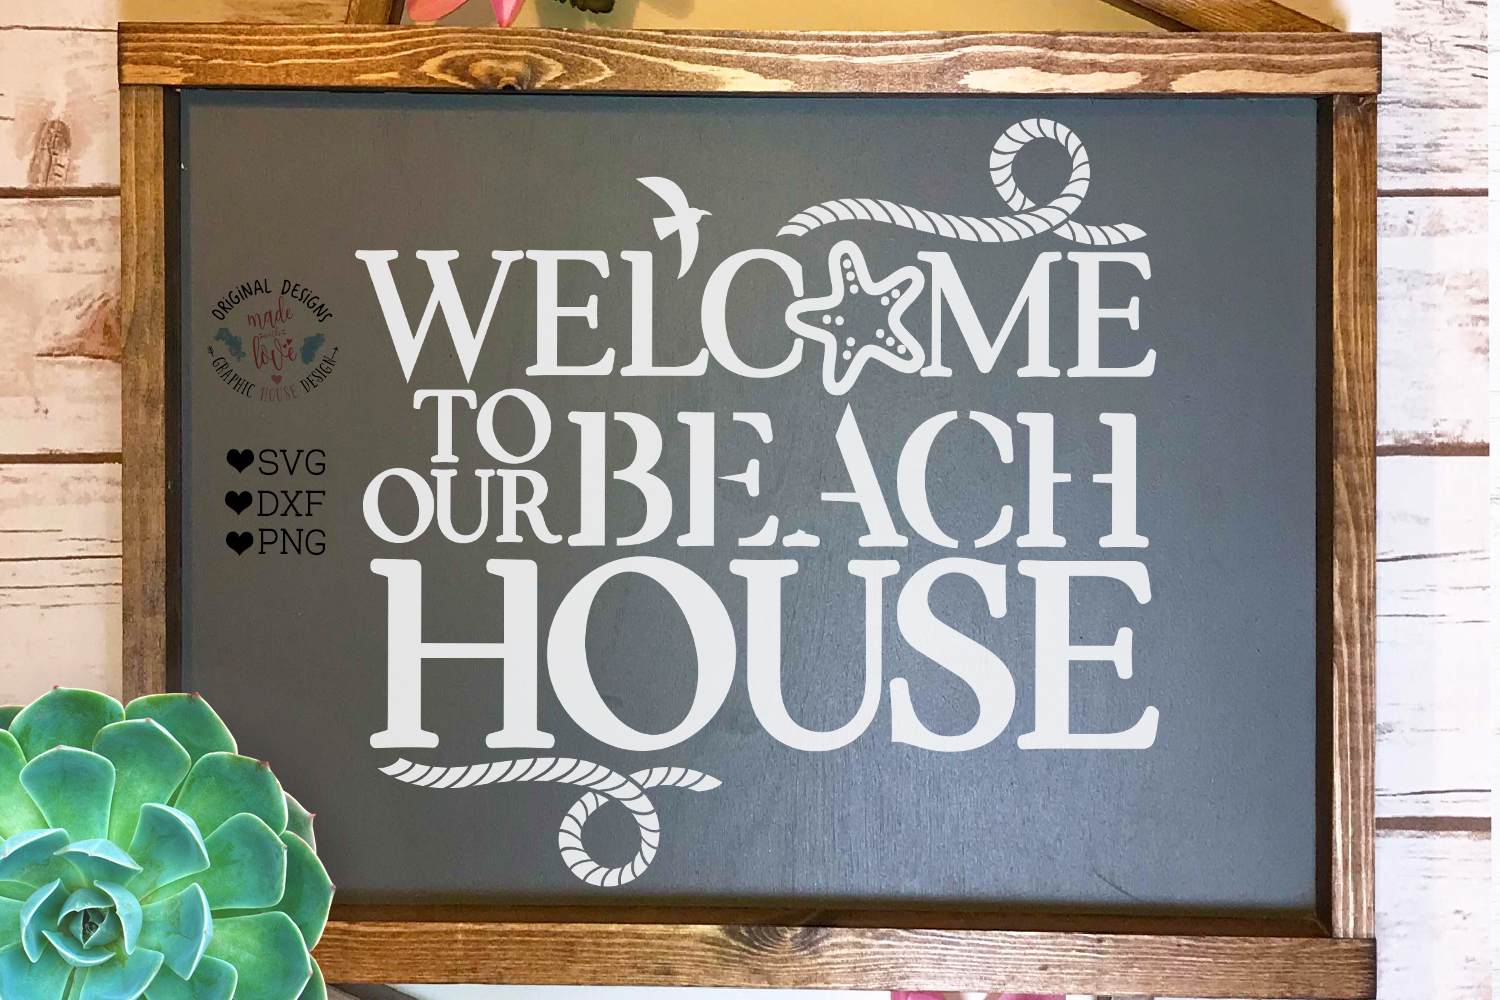 Welcome To Our Beach House - Summer Home Cut File example image 1